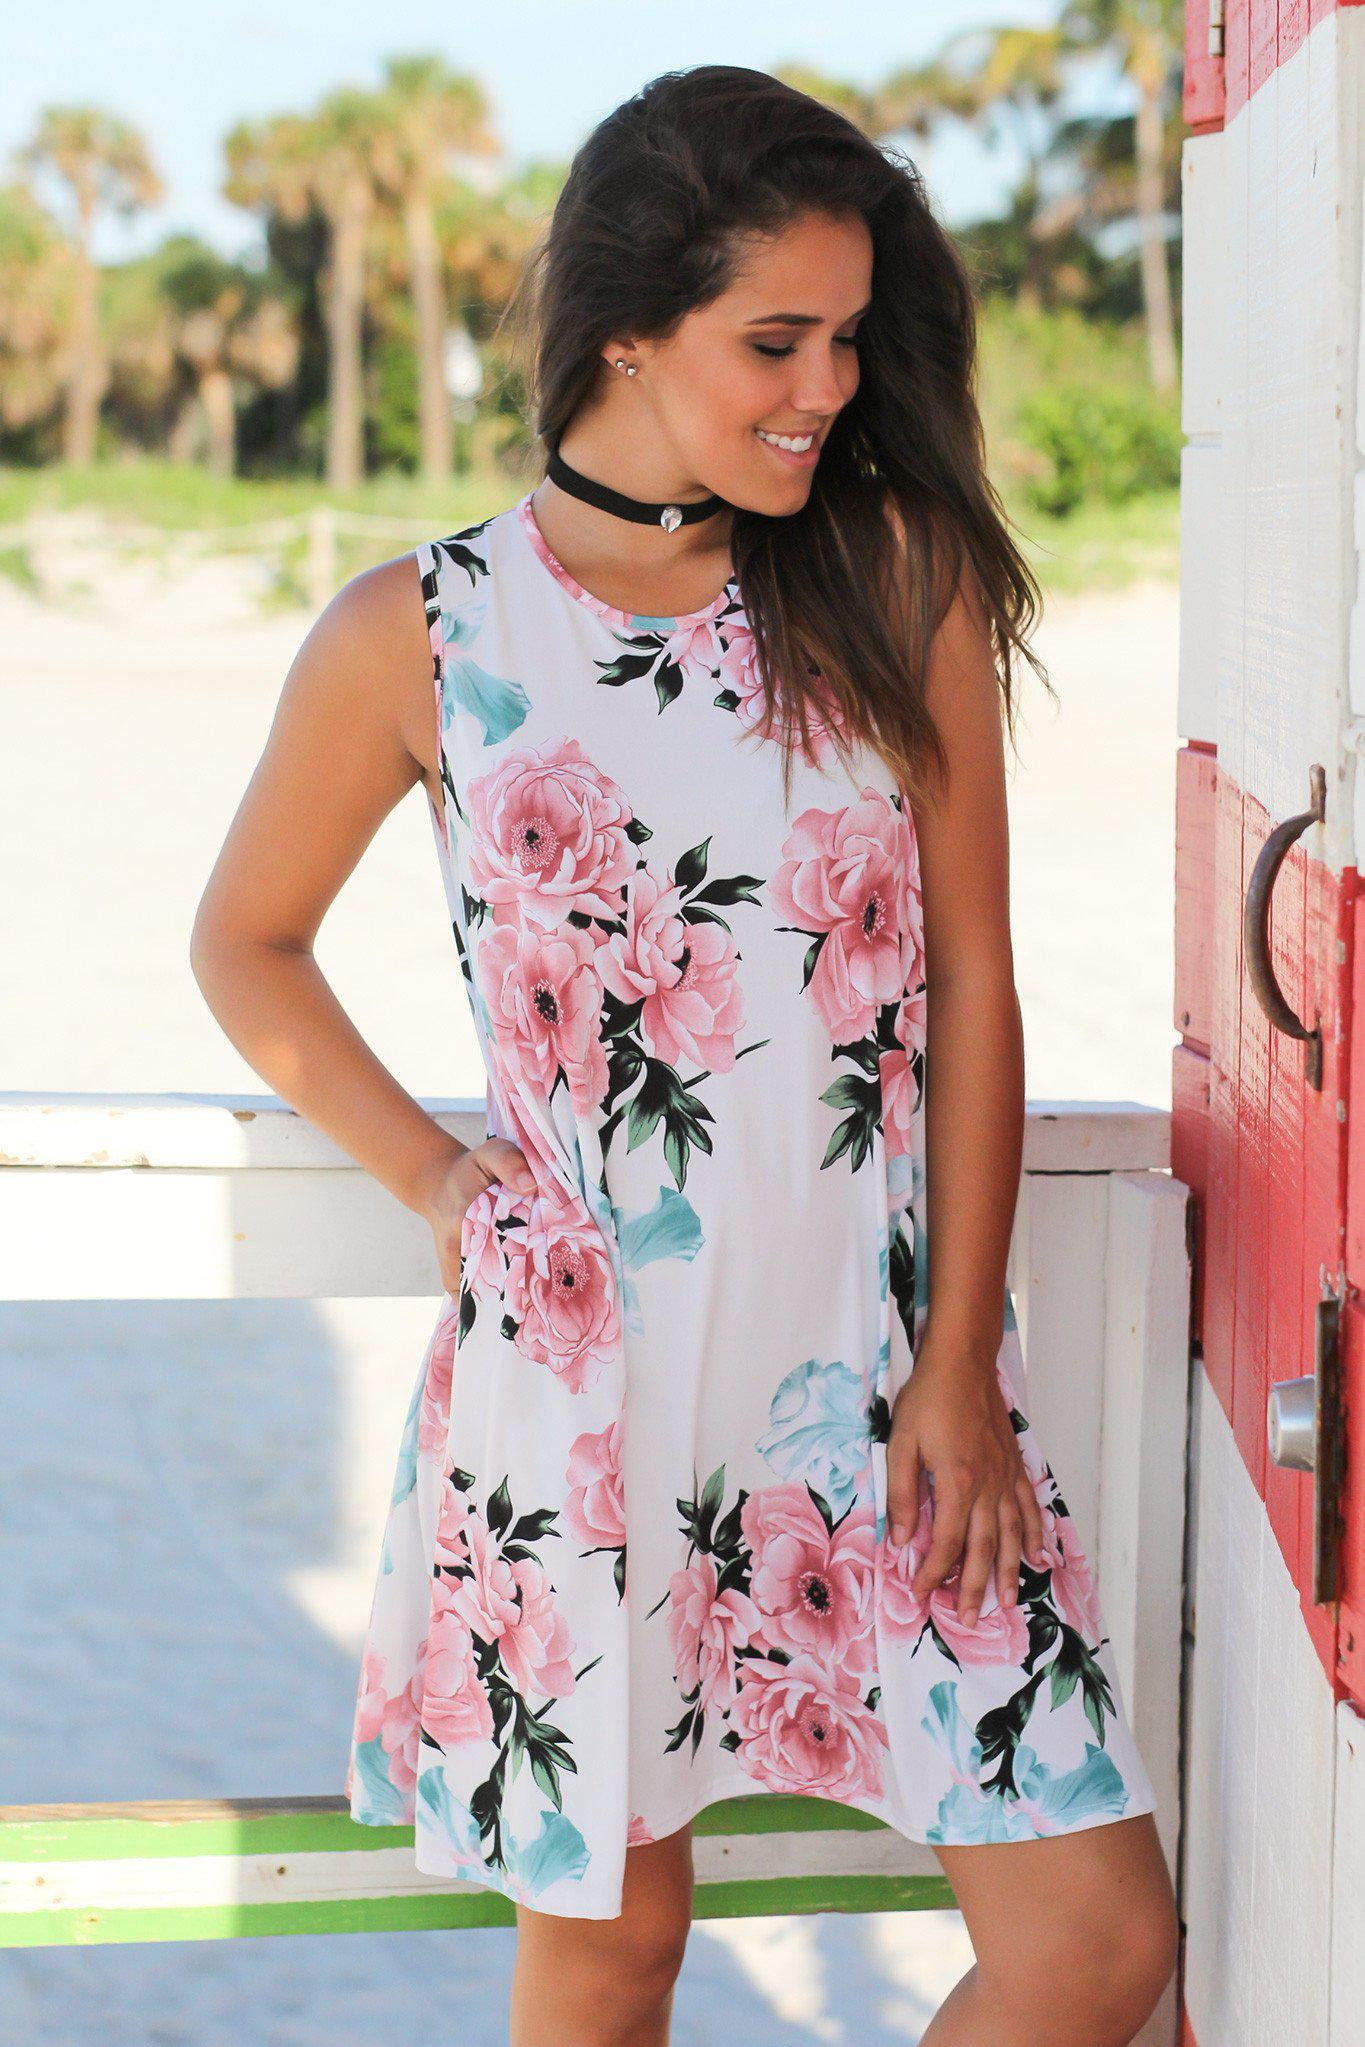 Ivory And Pink Floral Short Dress Short Dresses Saved By The Dress